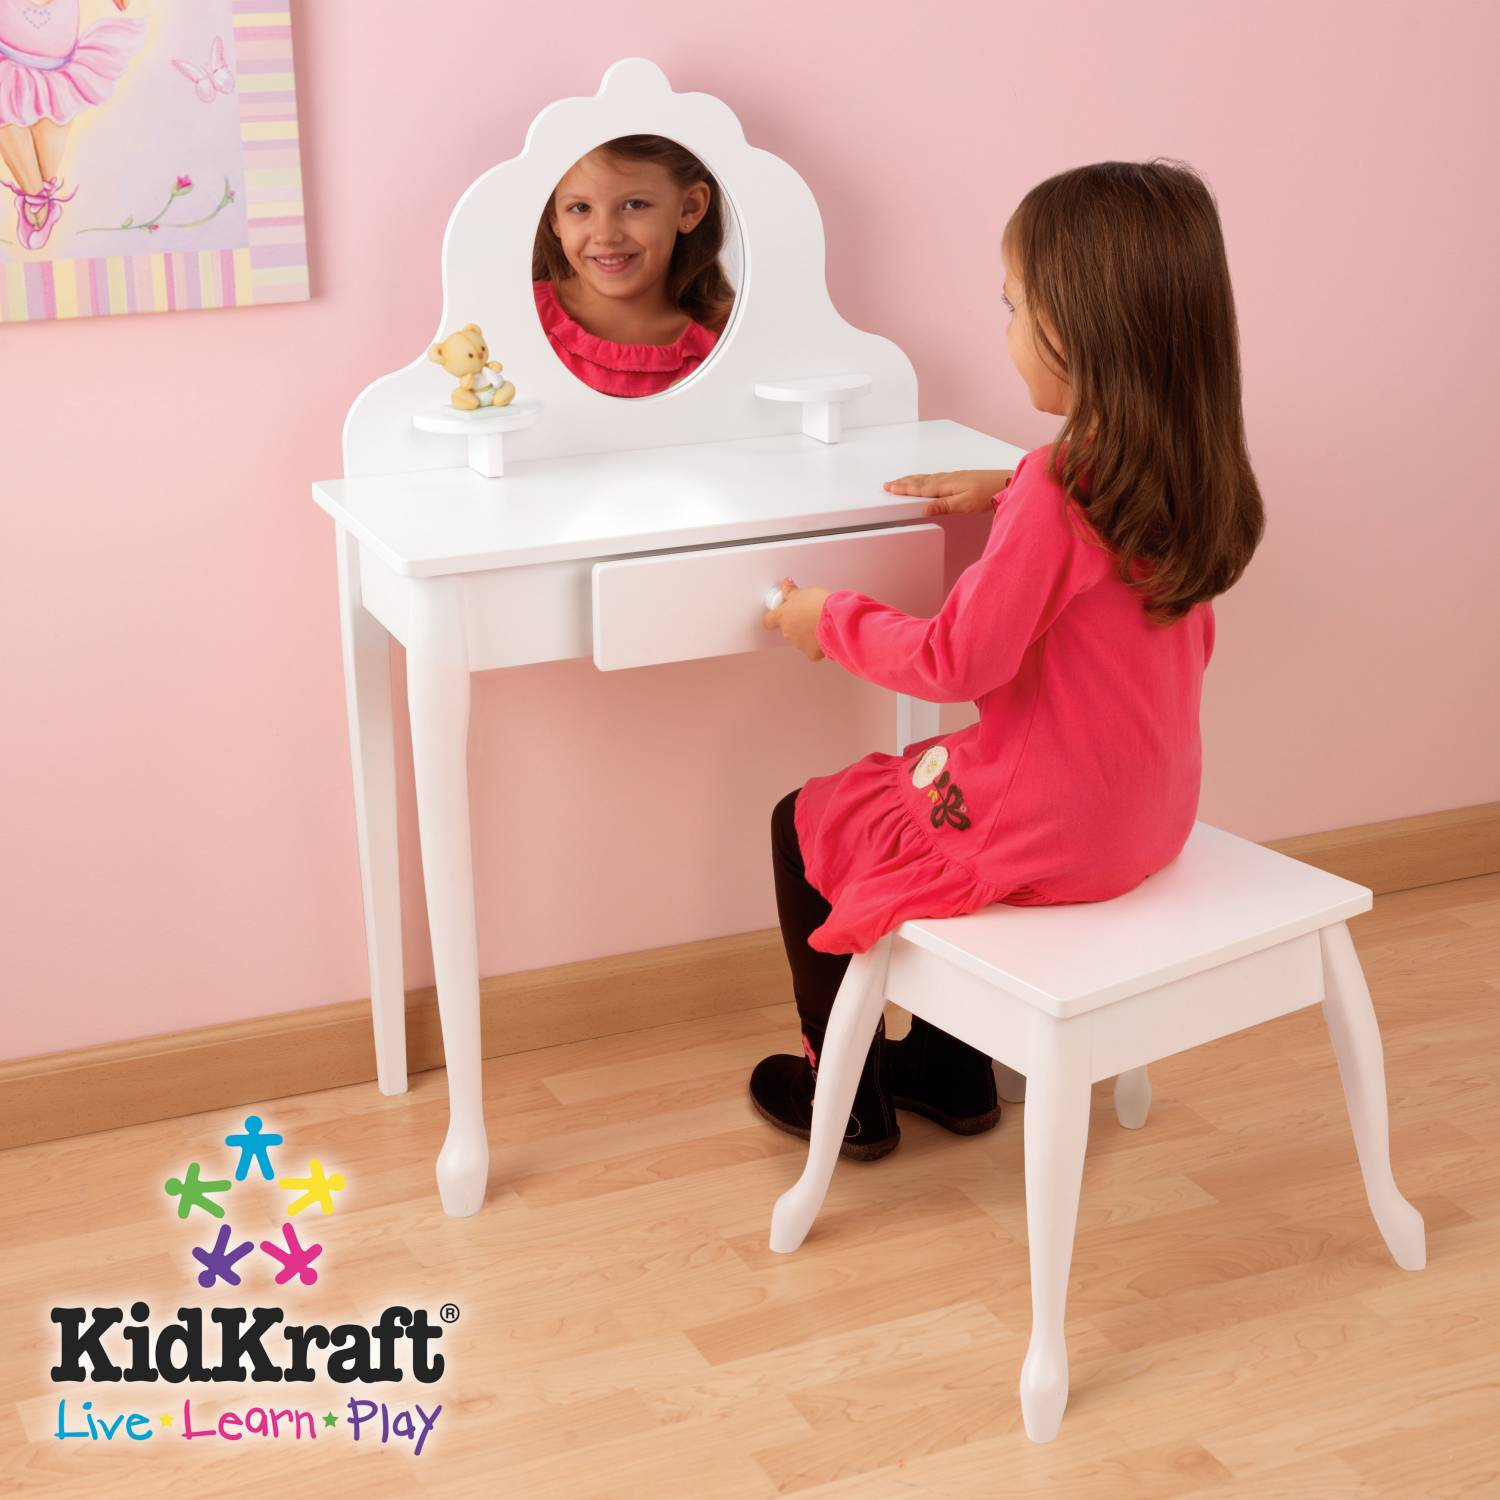 kidkraft kaptafel kidkraft. Black Bedroom Furniture Sets. Home Design Ideas